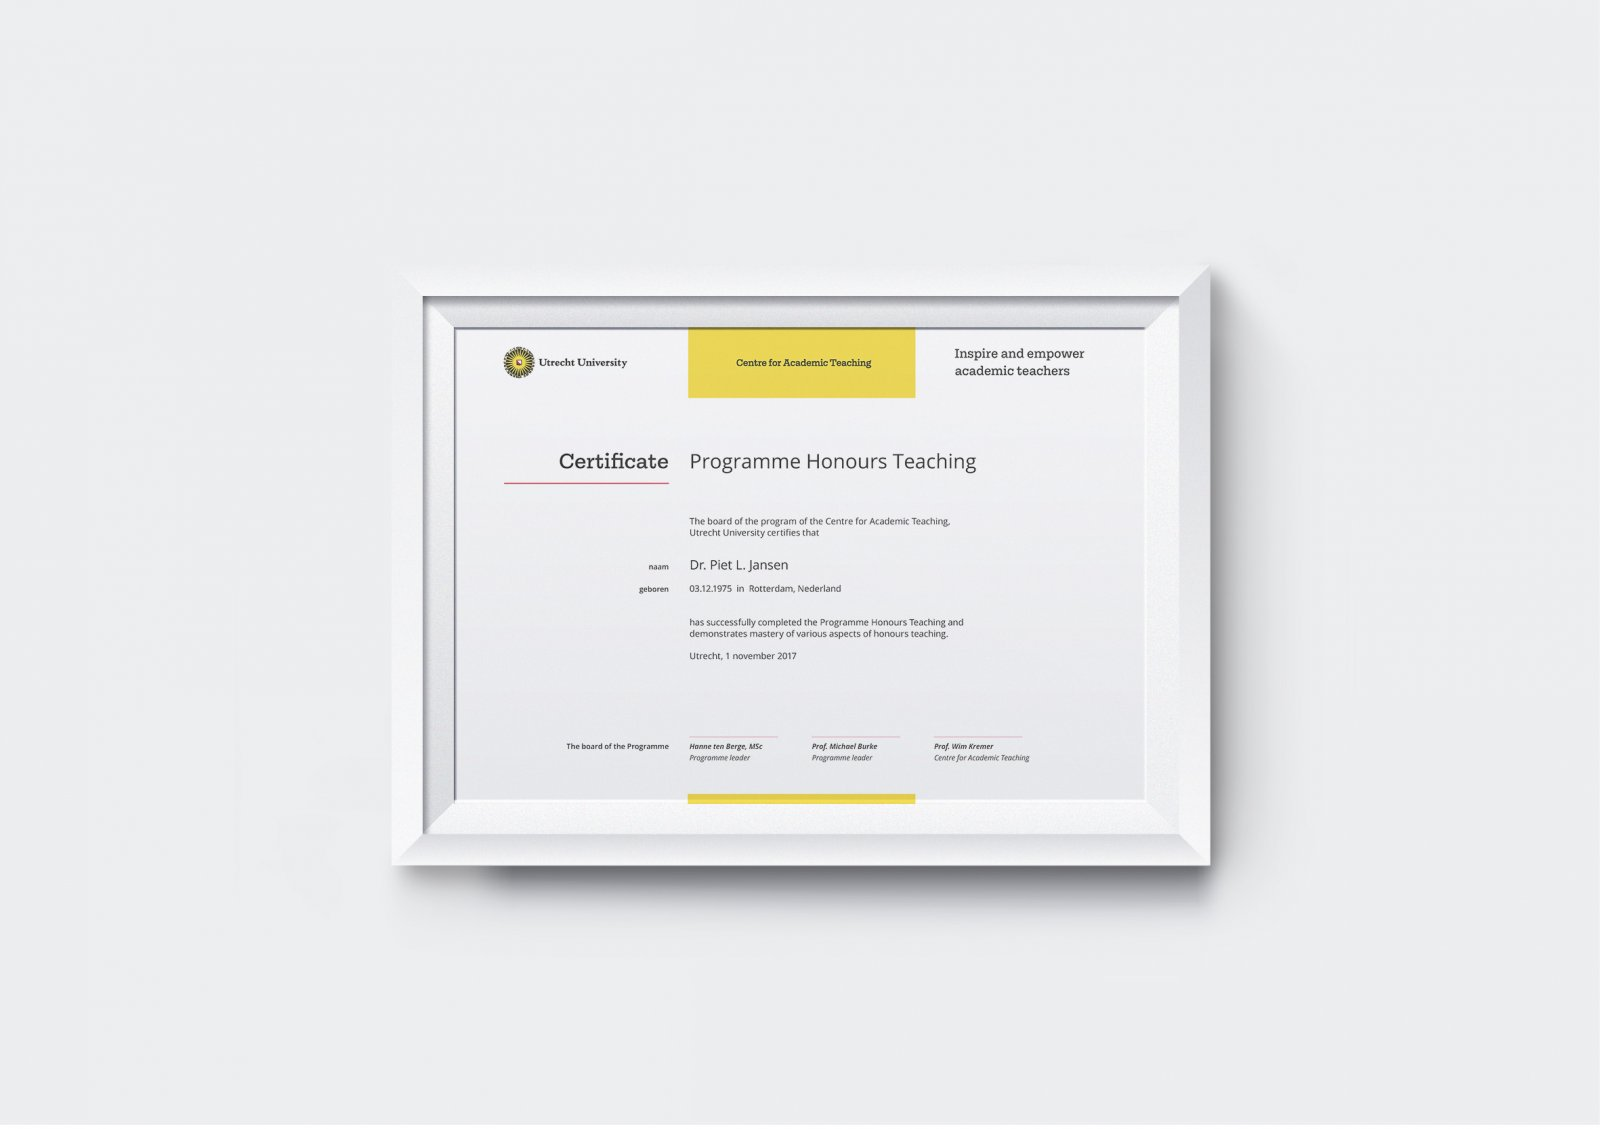 Centre for Academic Teaching, Certificate